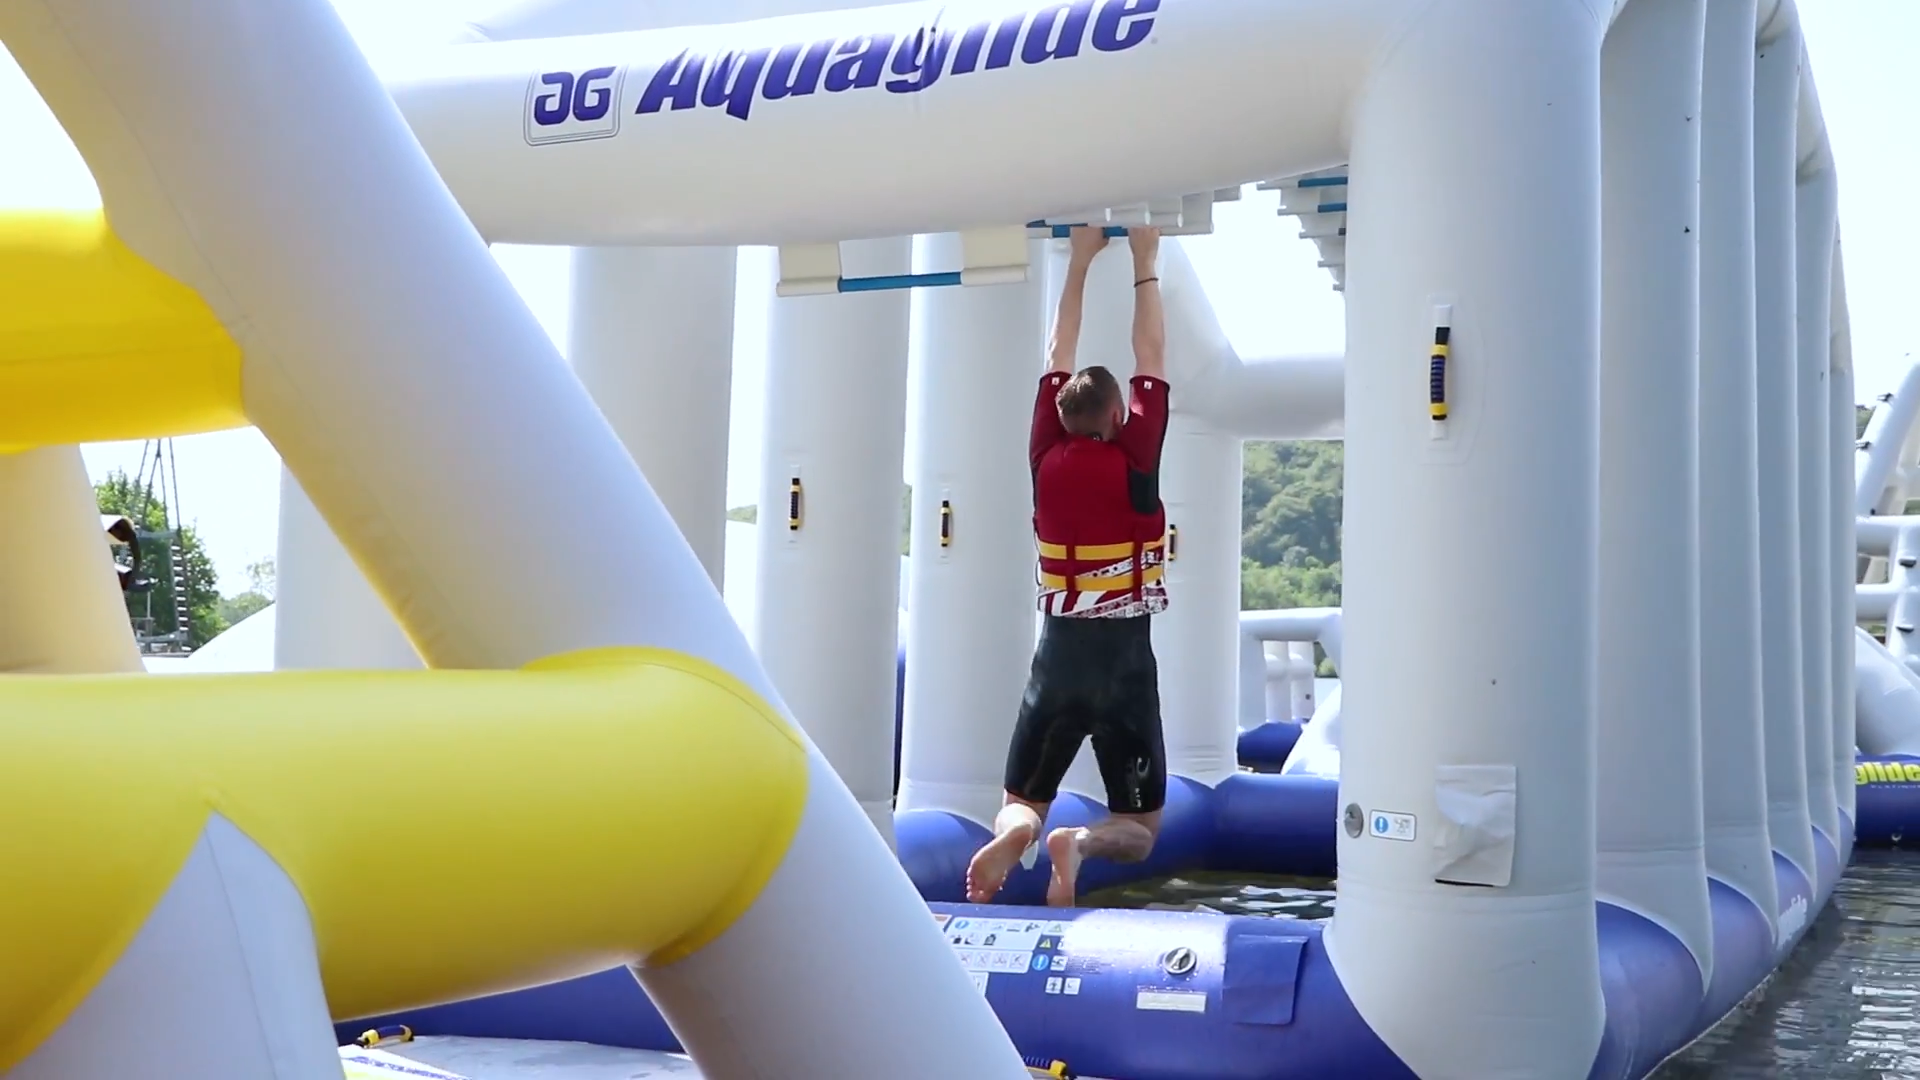 For Eagle Radio's Deal Of The Week, Presenter Jack Johnson got an exclusive look at Thorpe Lakes Aquapark in Chertsey, London's ultimate, floating, inflatable, obstacle course.